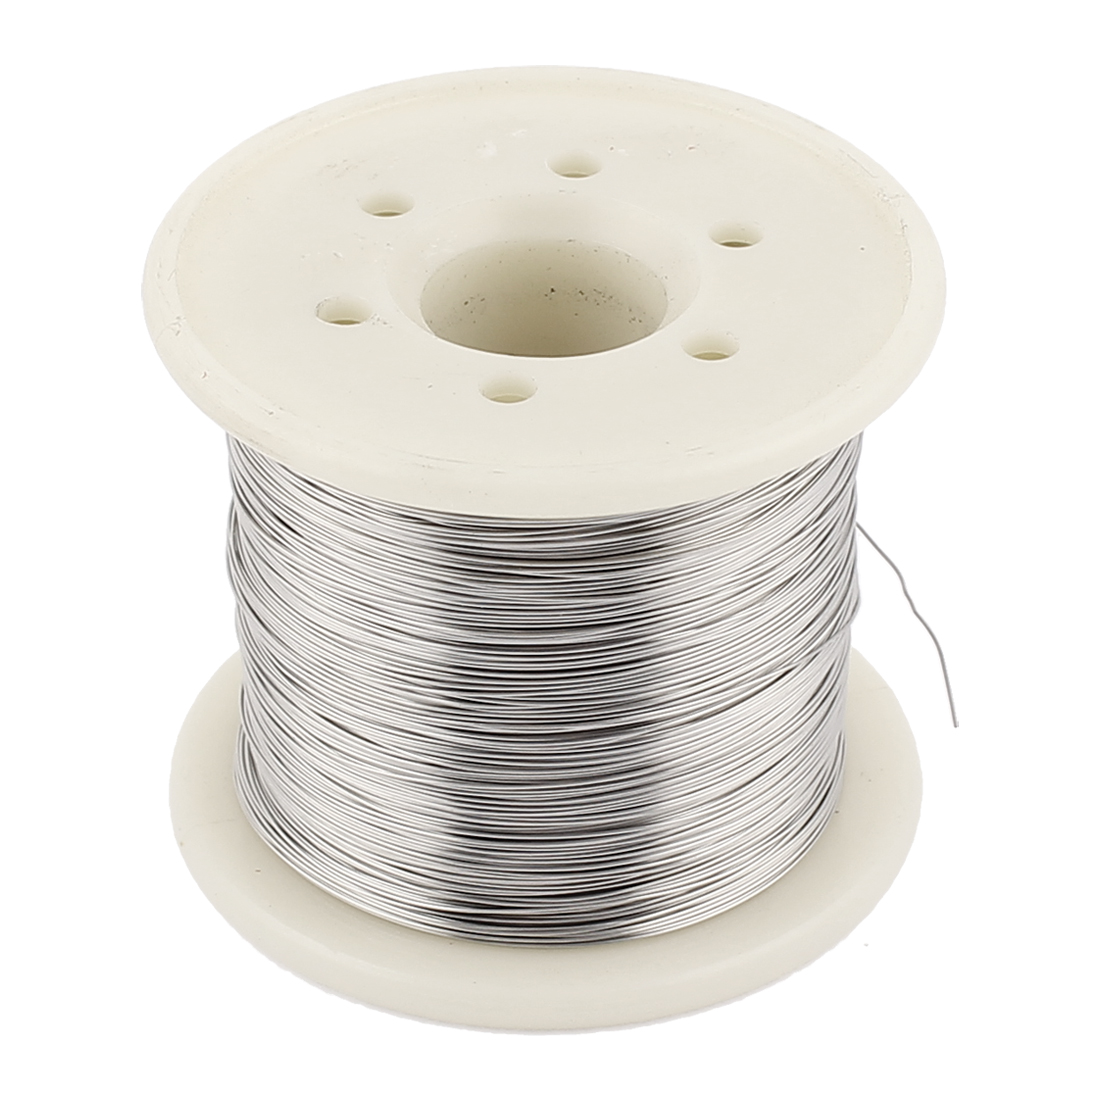 Nichrome 80 0.3mm 28 Gauge AWG 100M Roll 15.98 Ohms/m Heater Wire